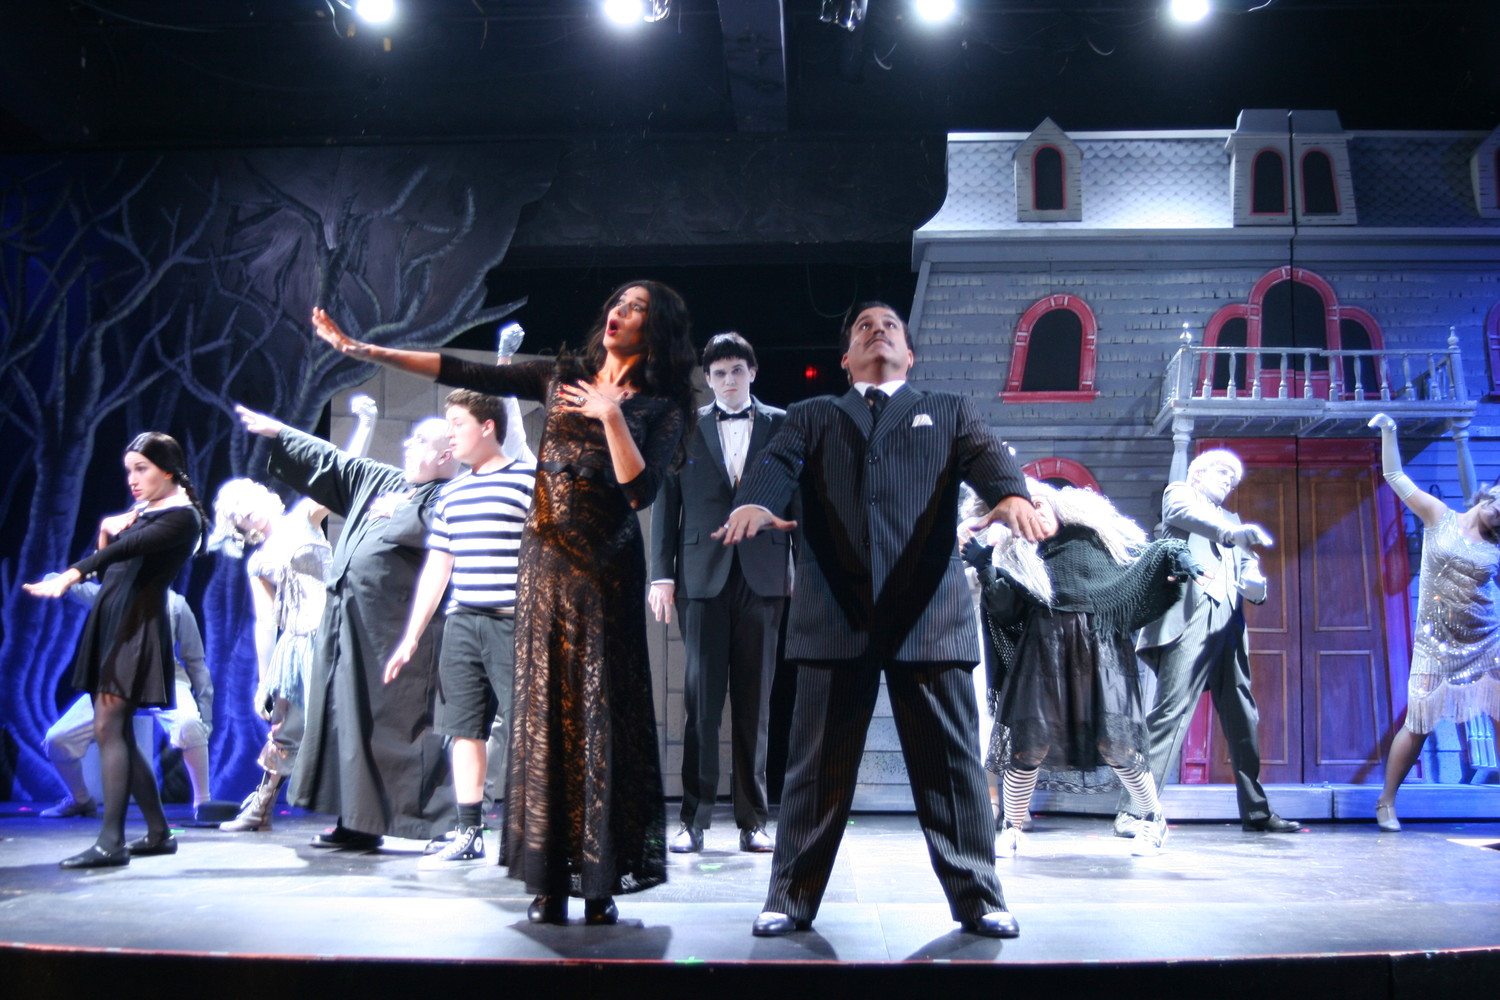 The Addams family will run through Nov. 12 at The Alhambra Theatre & Dining.